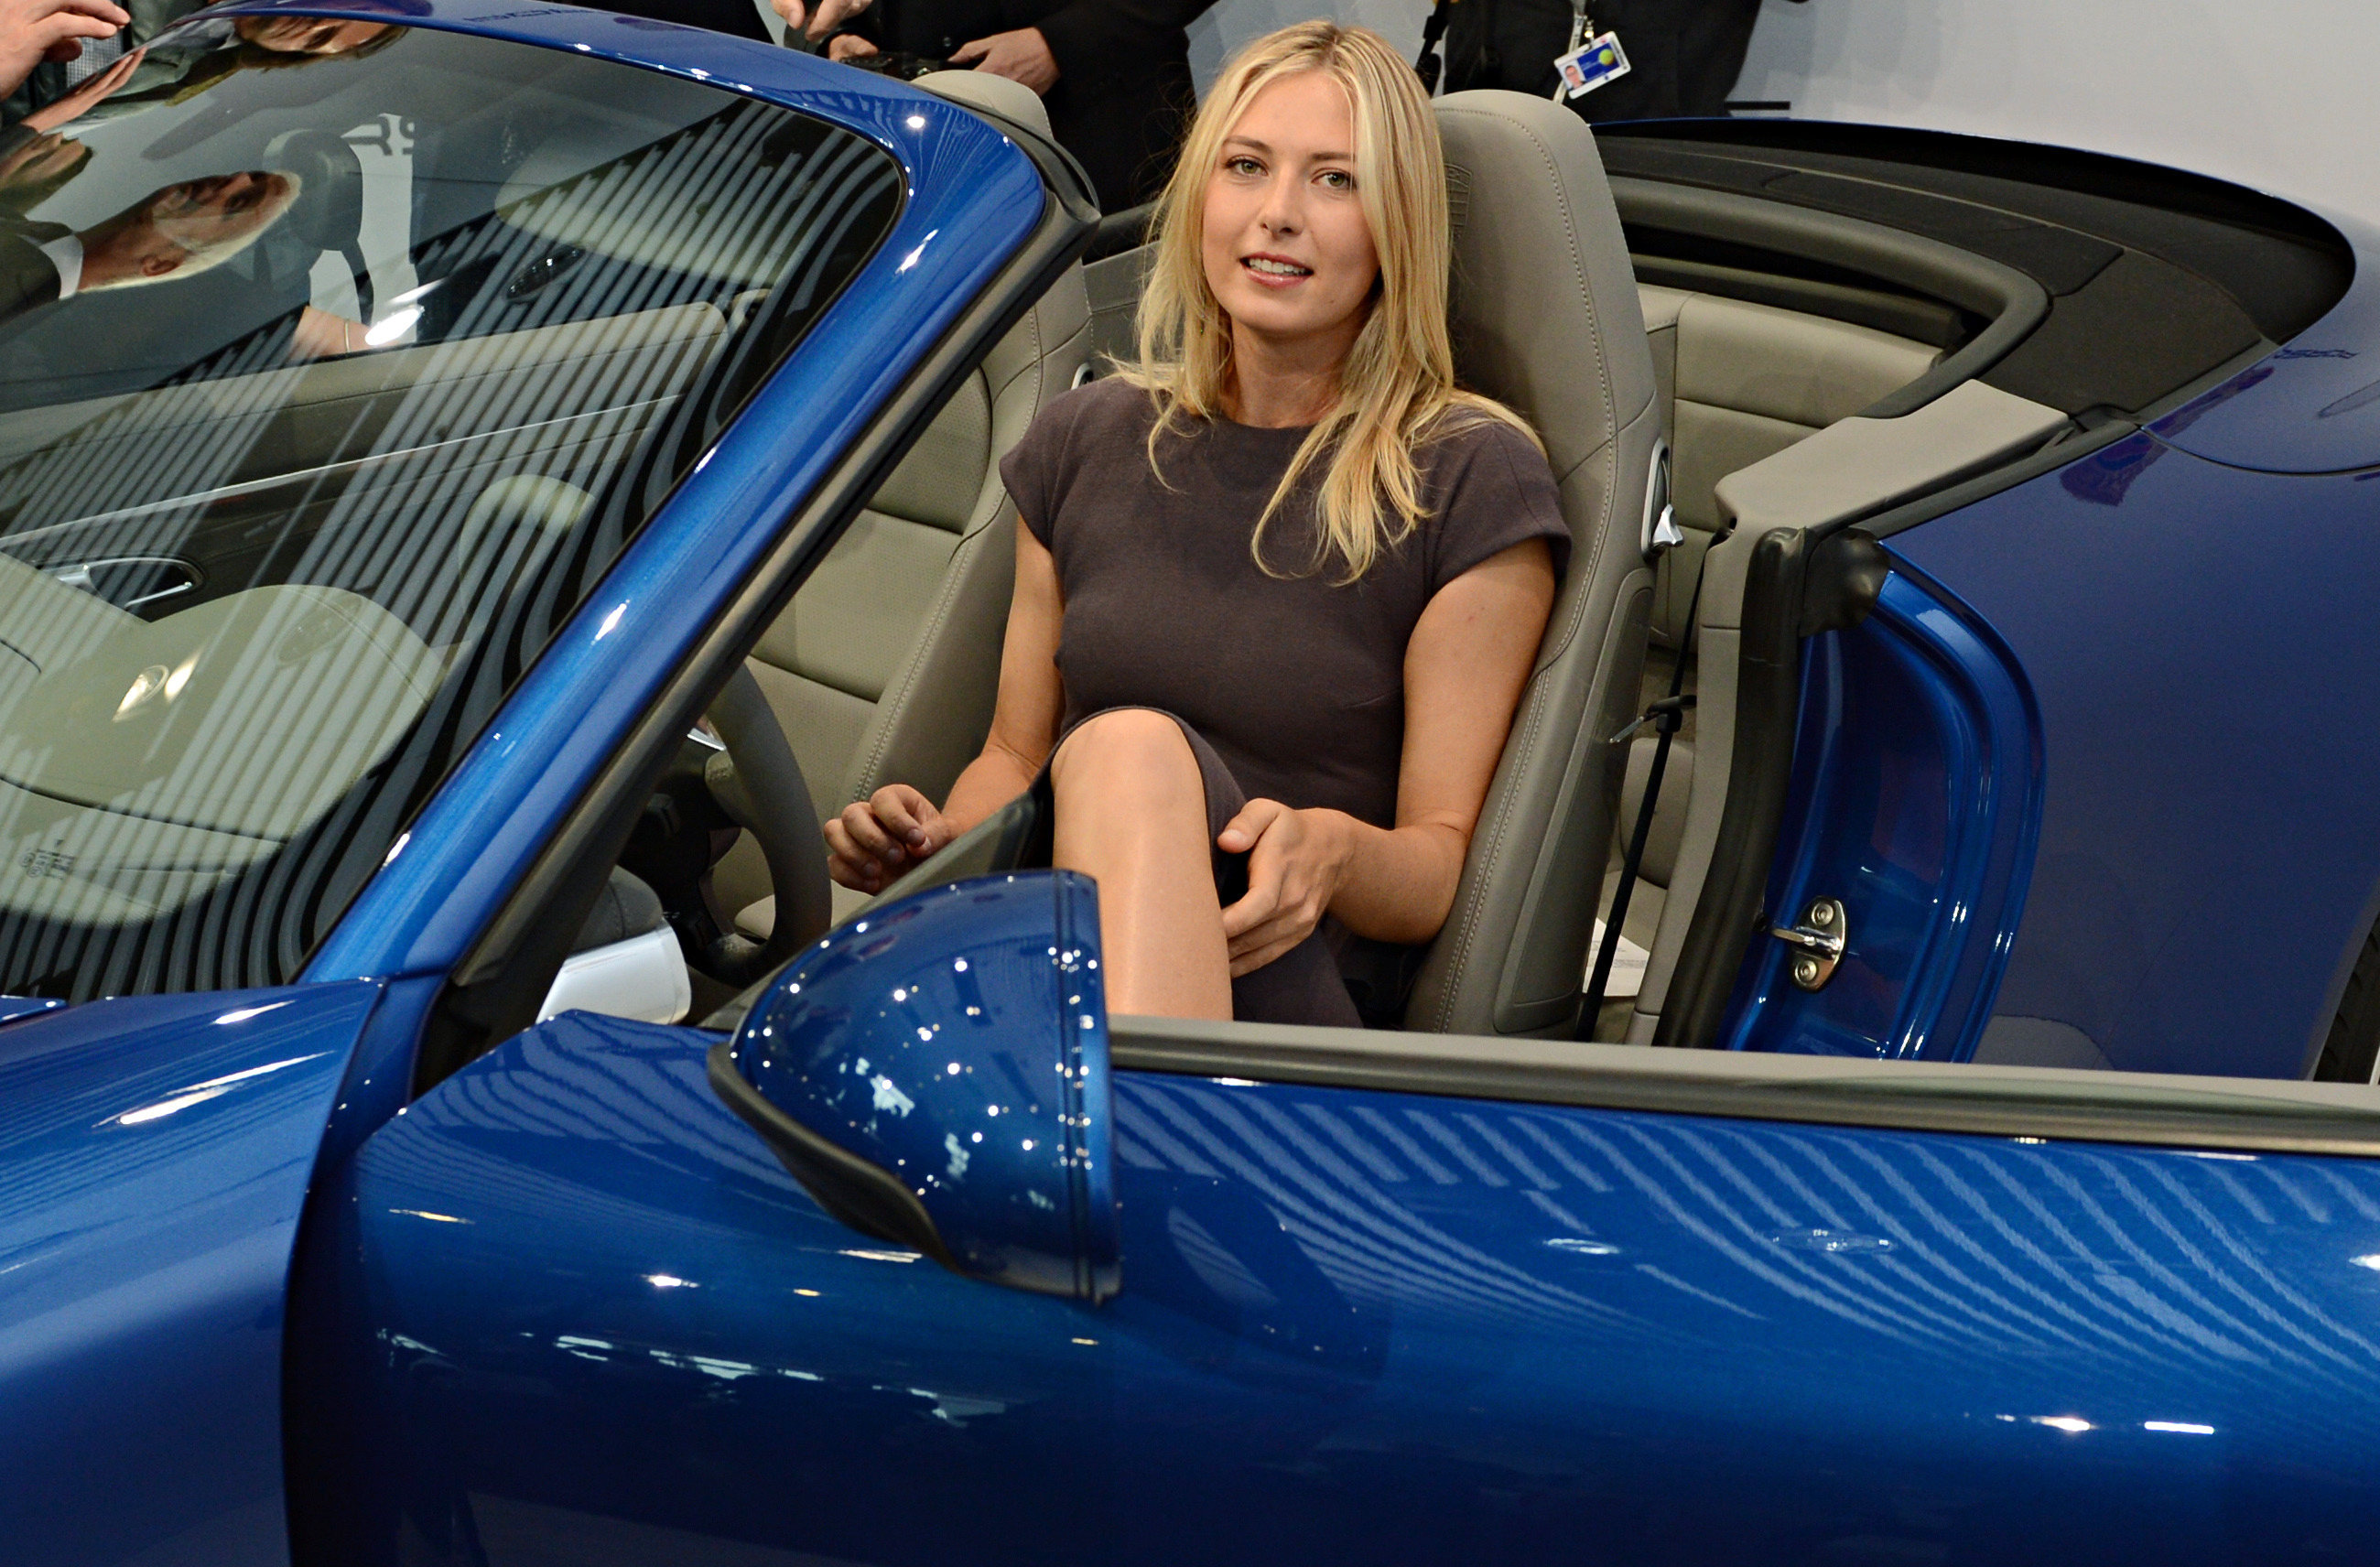 Russian tennis player Maria Sharapova poses inside a Porsche 911 in Stuttgart, southern Germany, on April 22, 2013. Sharapova will be the first global ambassador for German car manufacturer Porsche. AFP PHOTO / FRANZISKA KRAUFMANN GERMANY OUT / AFP / DPA / FRANZISKA KRAUFMANN